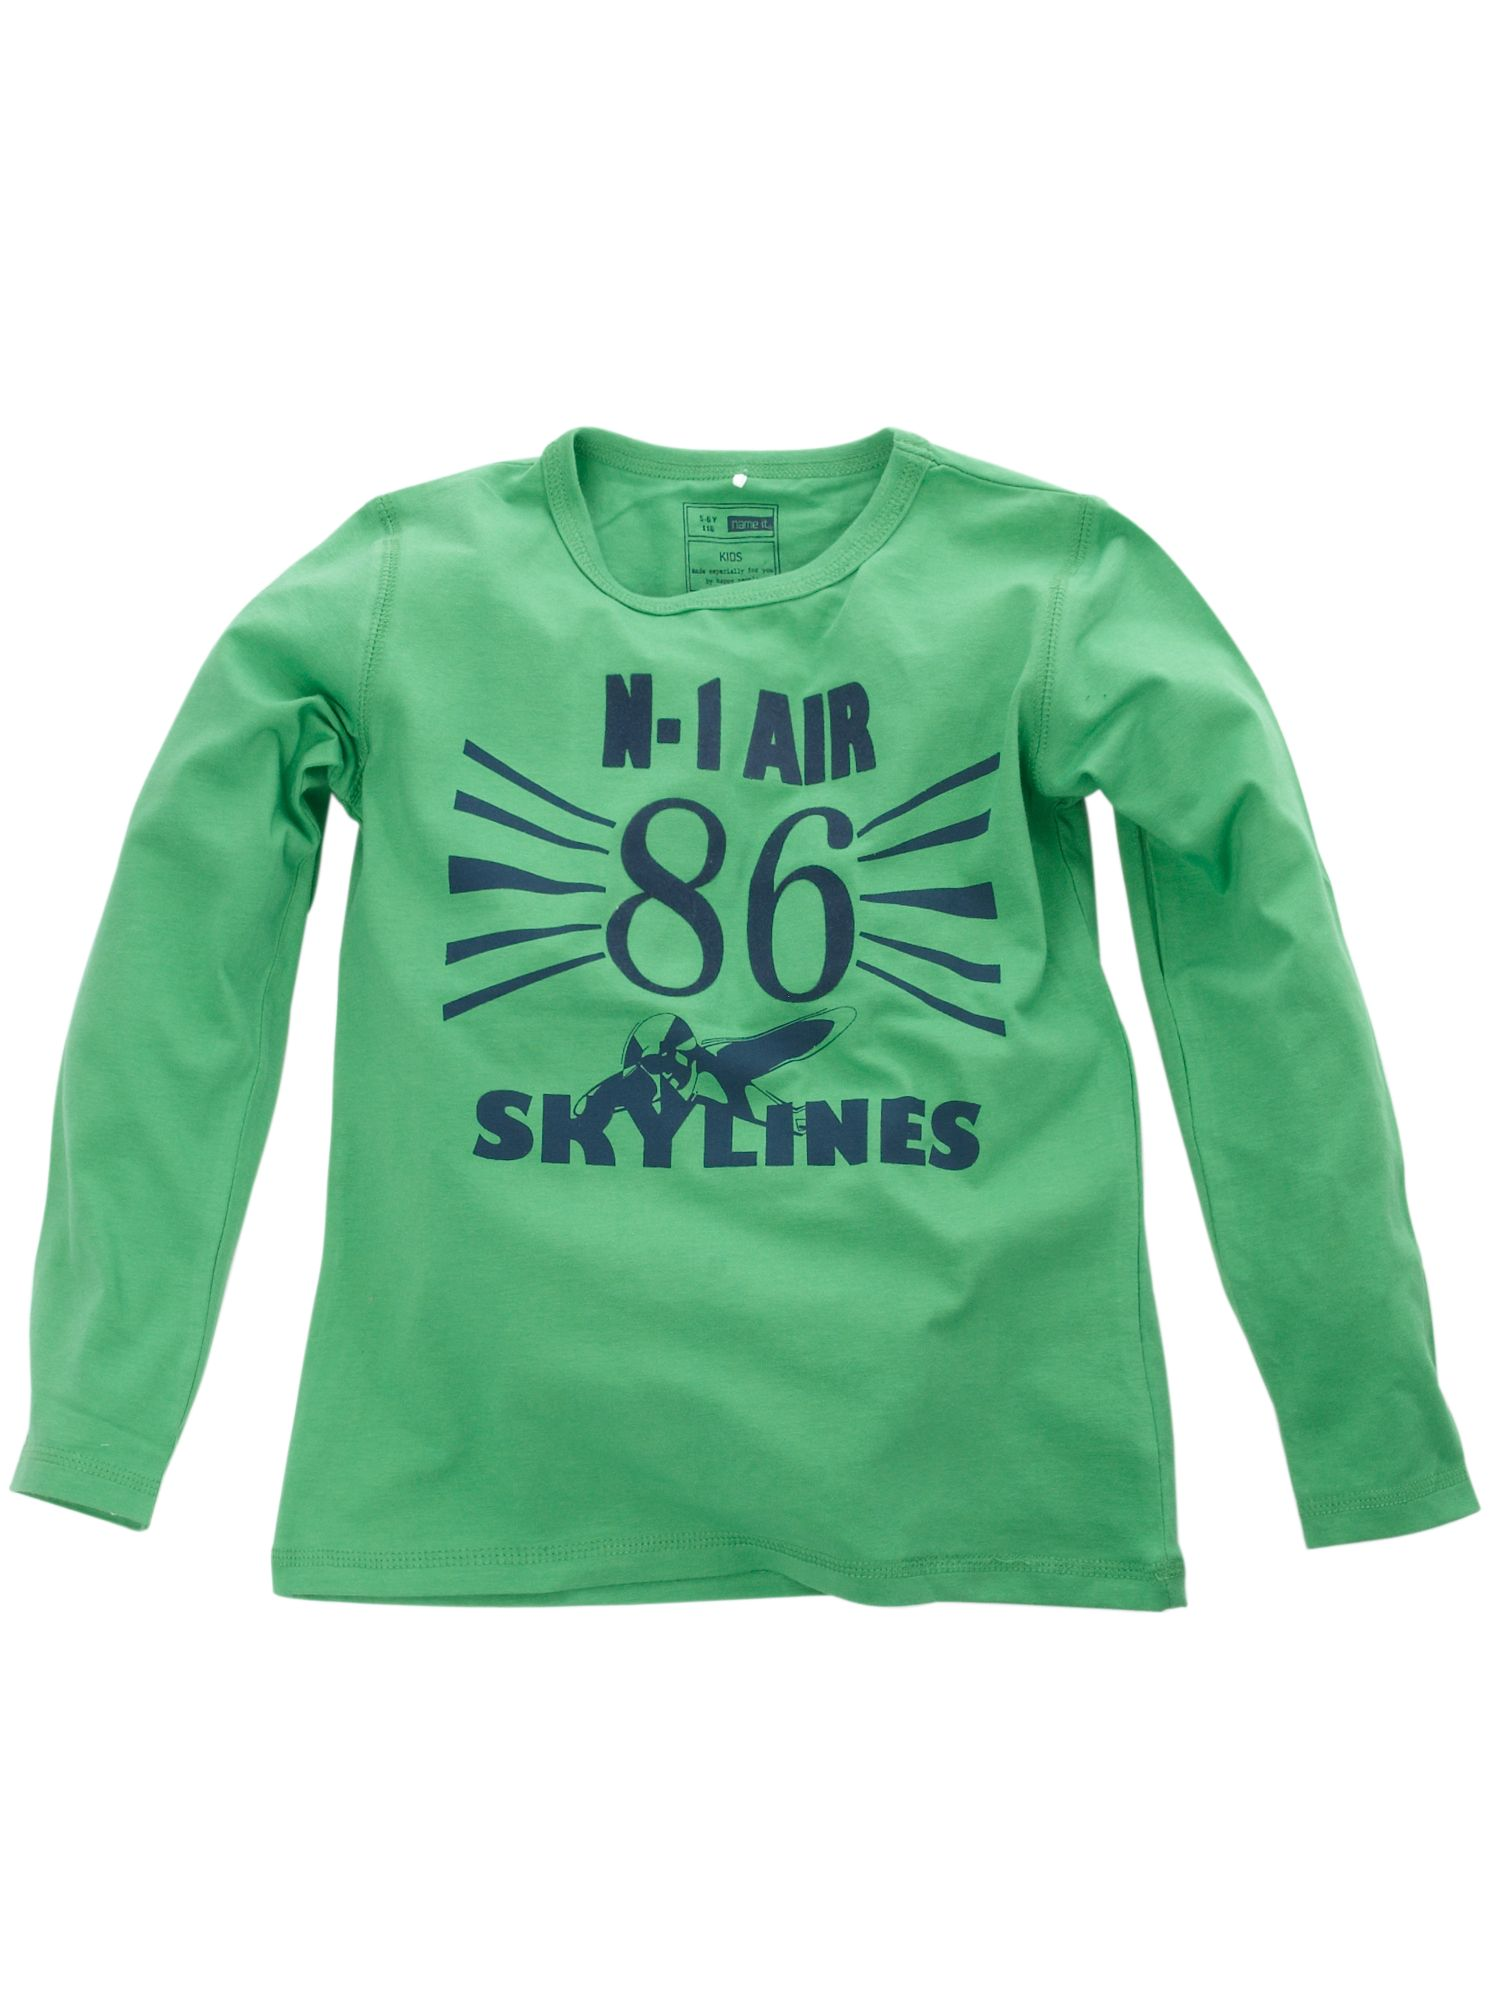 Name it long sleeved air force print t shirt green 10 for Print name on shirt